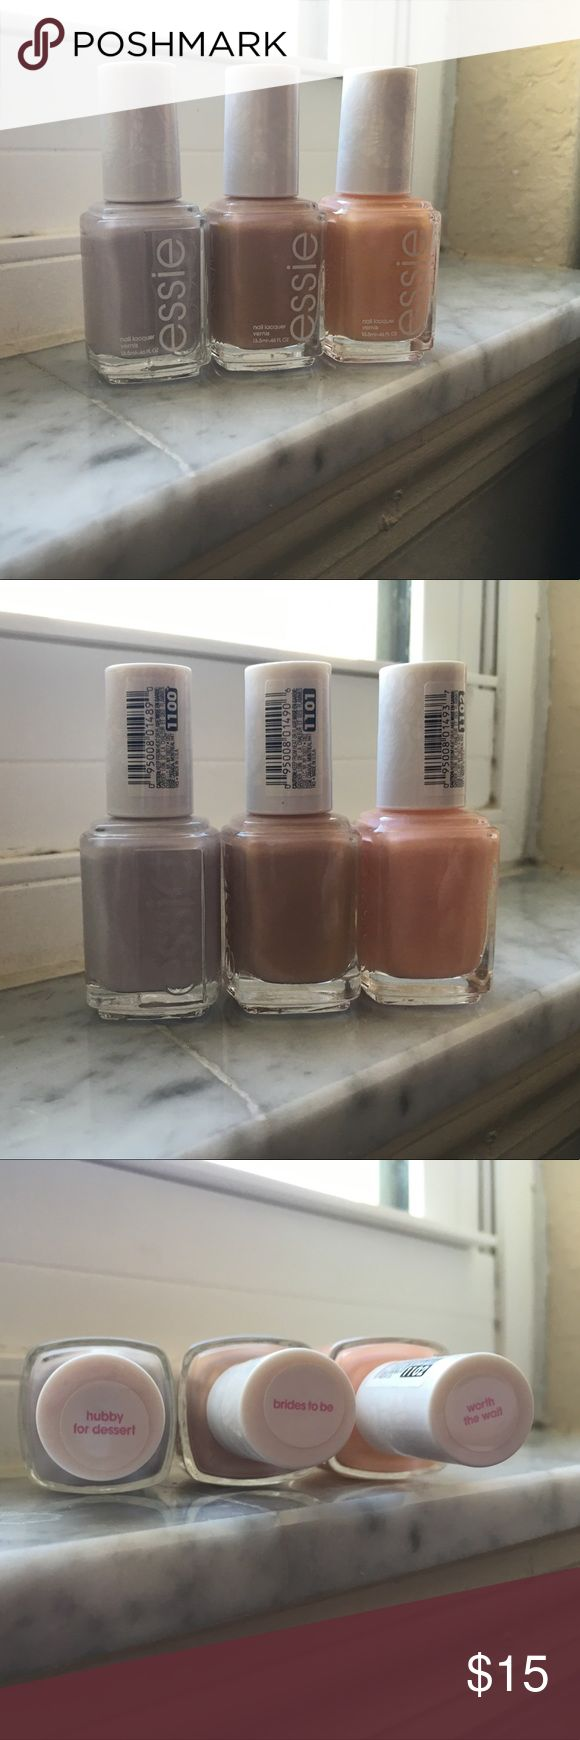 """NEW Essie Bridal Collection FULL SIZE Color Trio 1100 """"Hubby for Dessert""""; 1101 """"Brides to Be""""; 1102 """"Worth the Wait"""" All Nail Polishes are Lovely, Delicate Colors!!! Essie Makeup"""